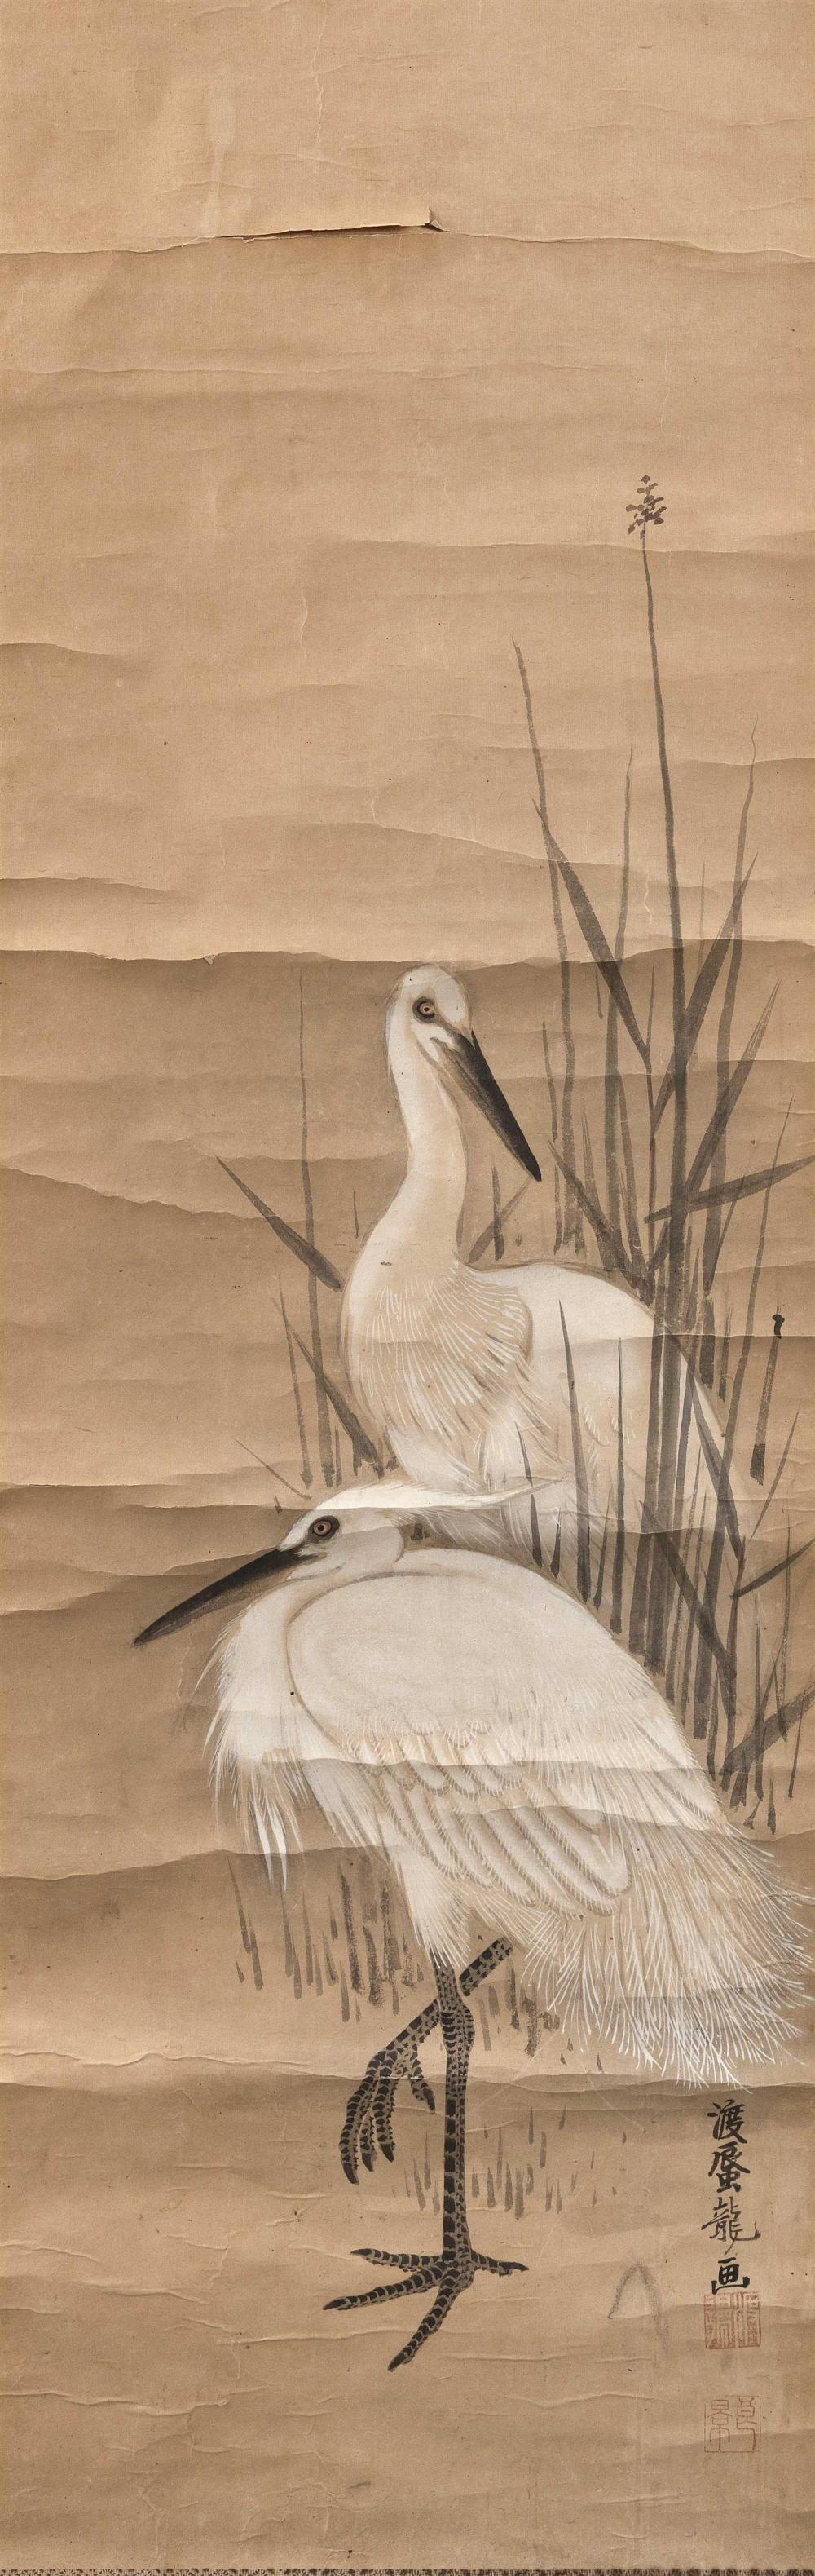 "JAPANESE SCROLL PAINTING ON PAPER Depicts white cranes in a marsh. Signed and seal marked lower right. 38.25"" x 12.25"". Provenance:..."